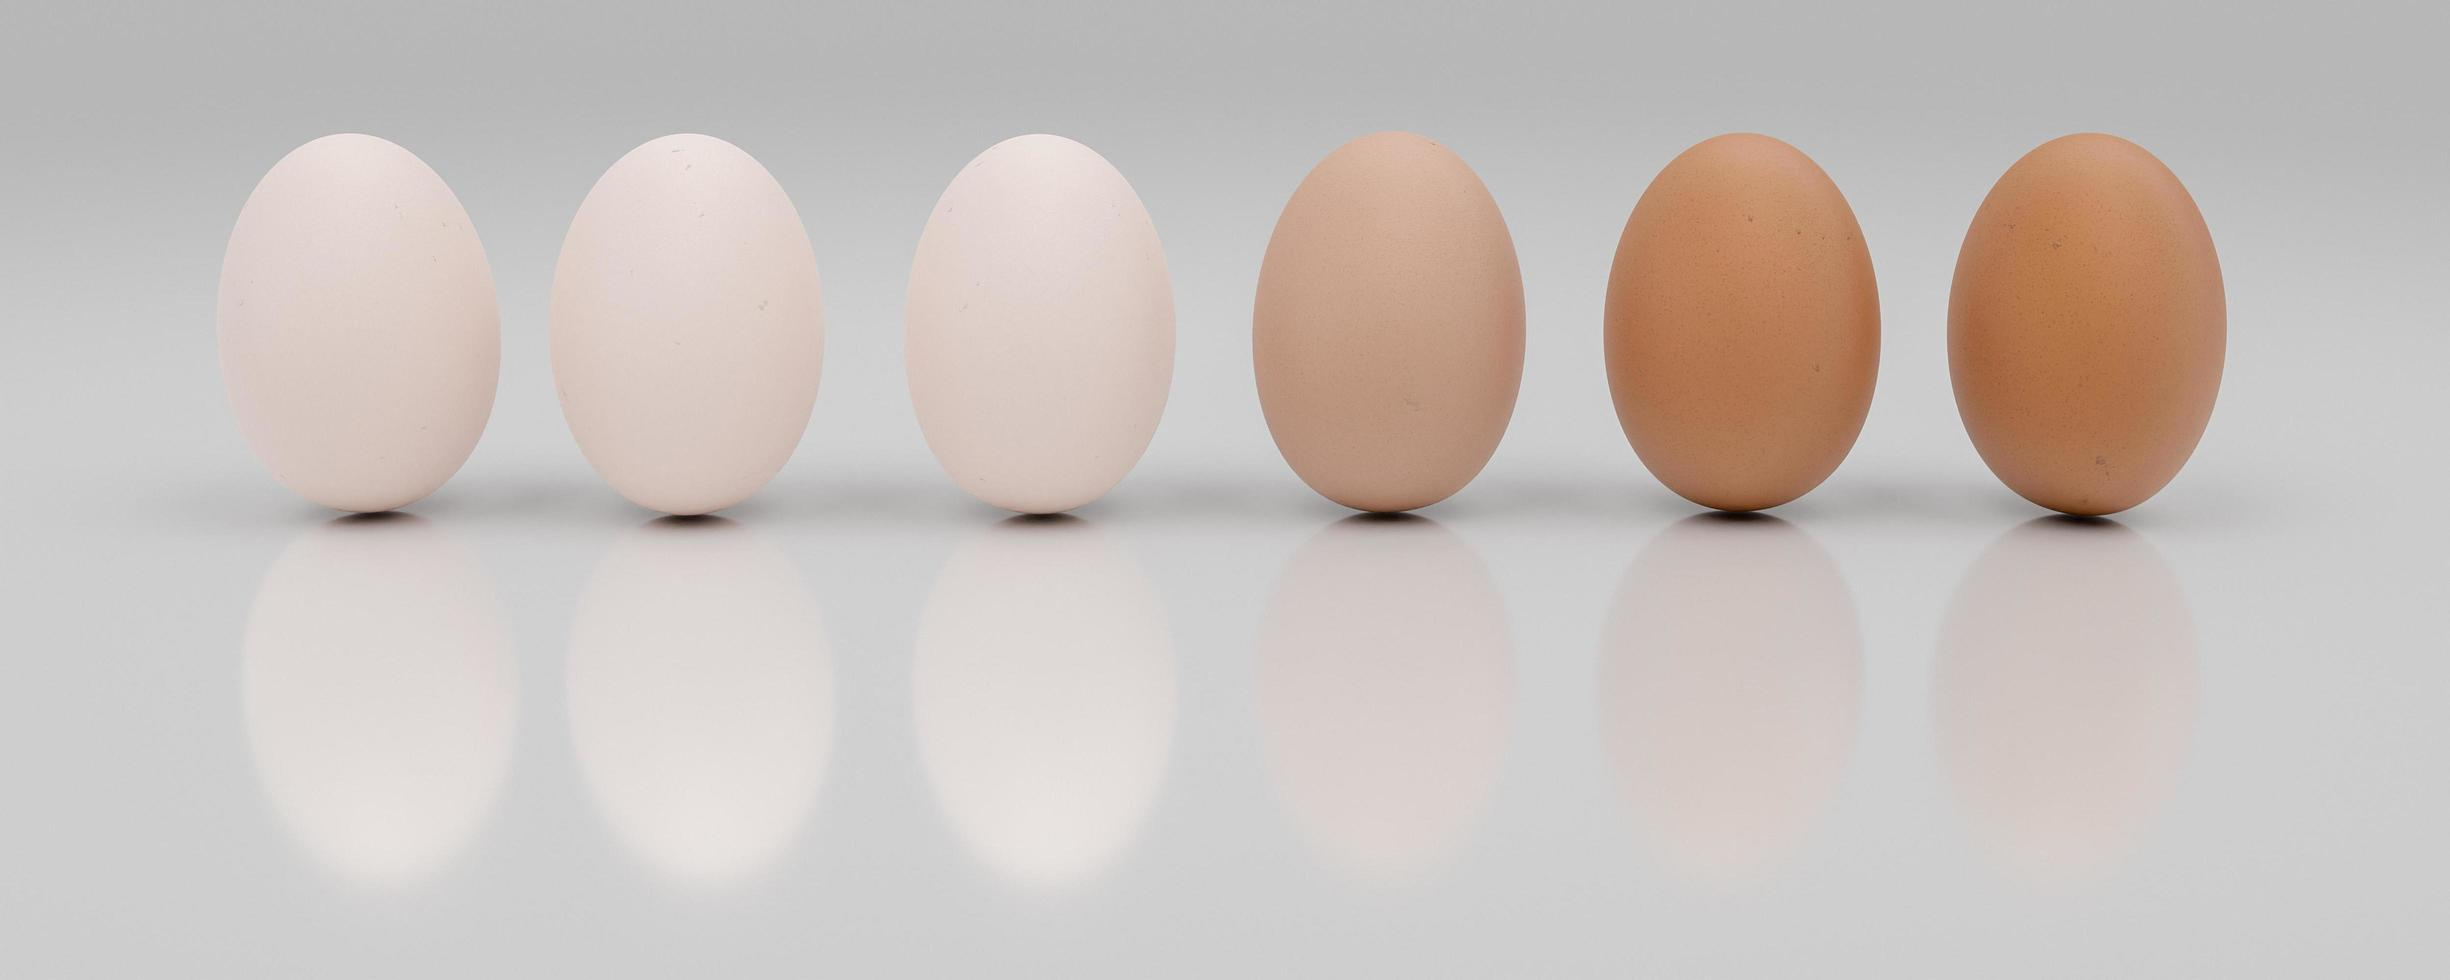 3D row of a dozen eggs sorted from light to dark photo